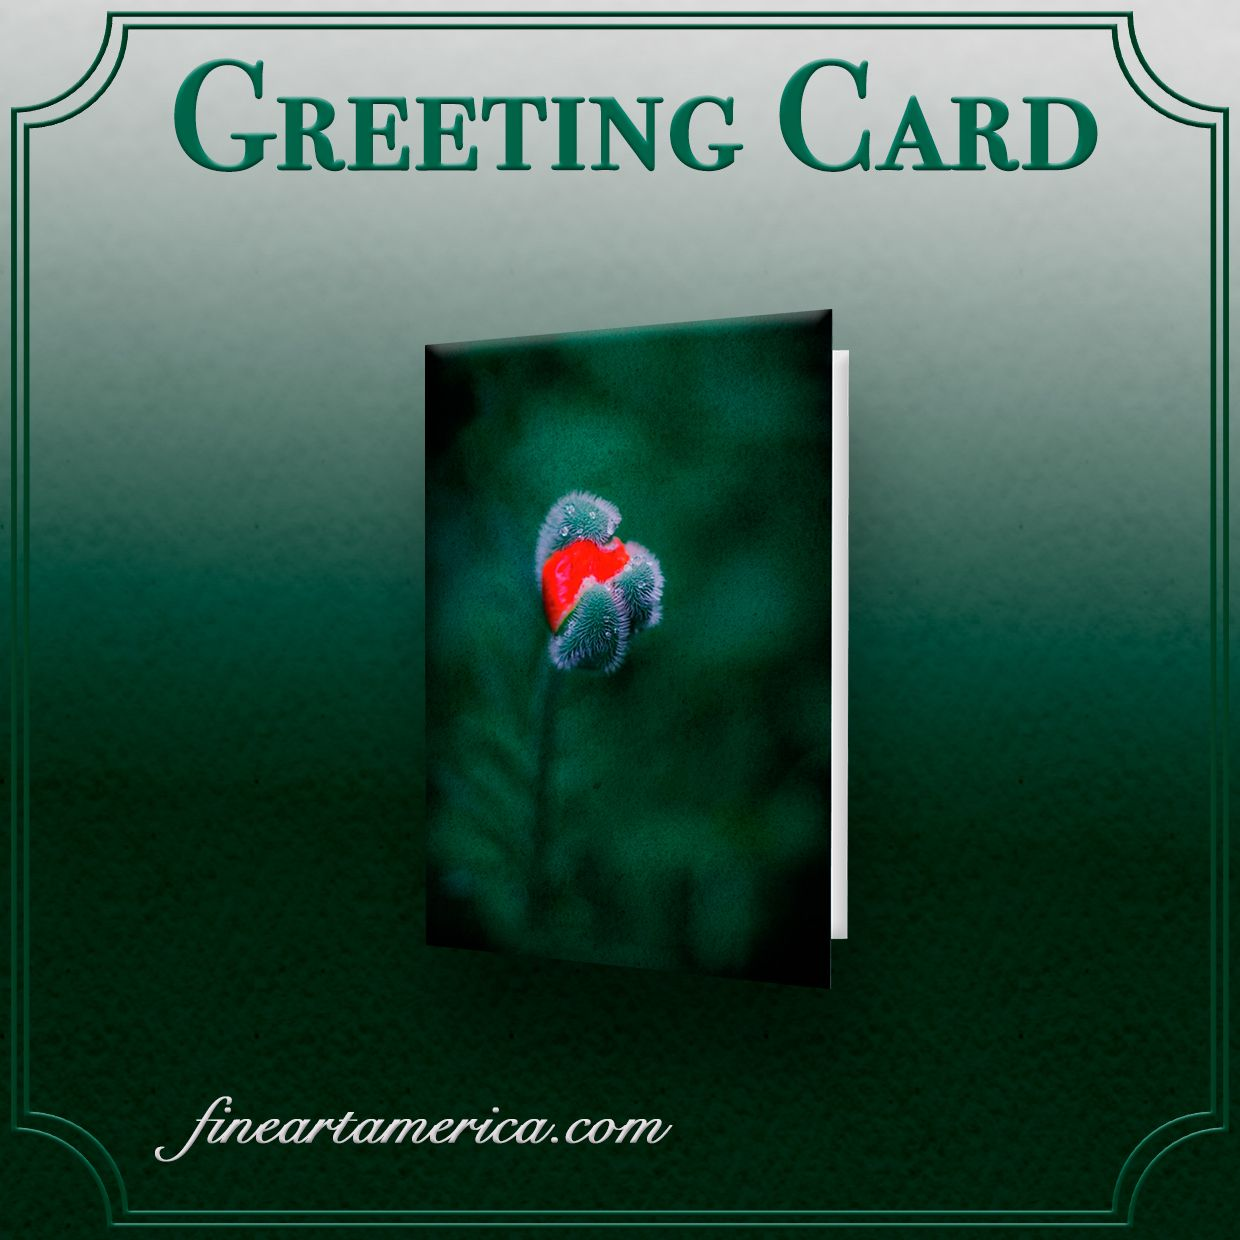 GREETING CARD Scarlet poppy bud with drops of water Dark green background  photography